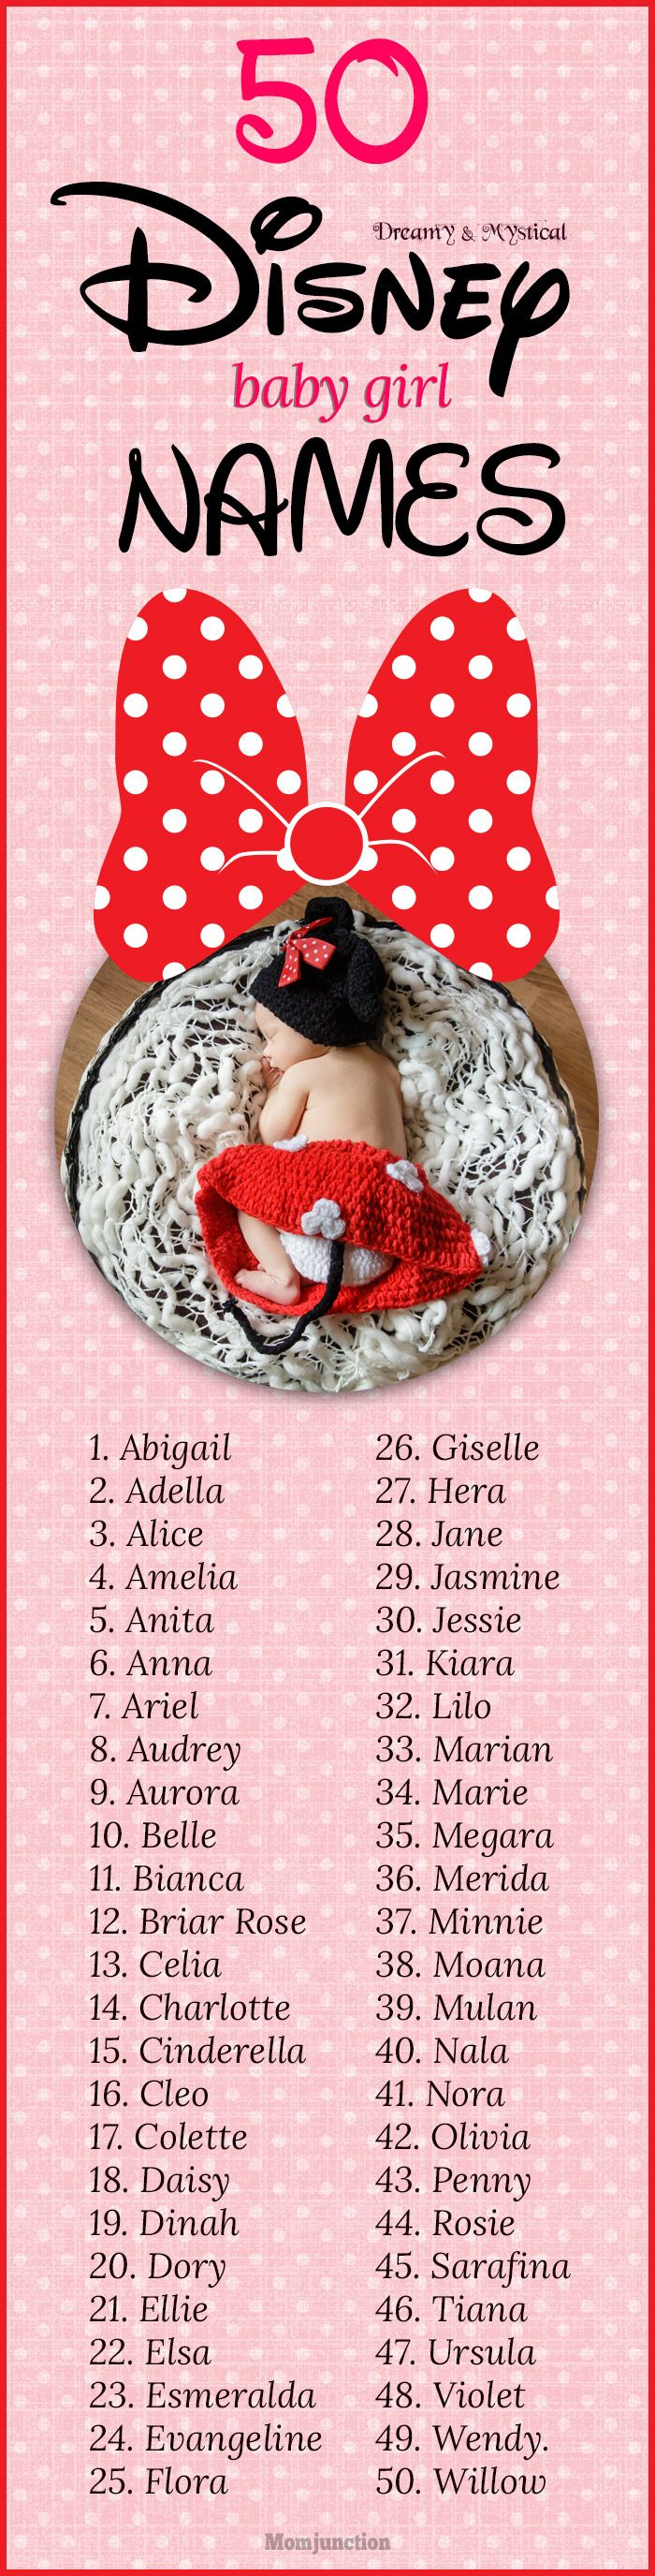 Disney Girl Names Inspired By The Characters From Magical World Of Disneyland Pick Your